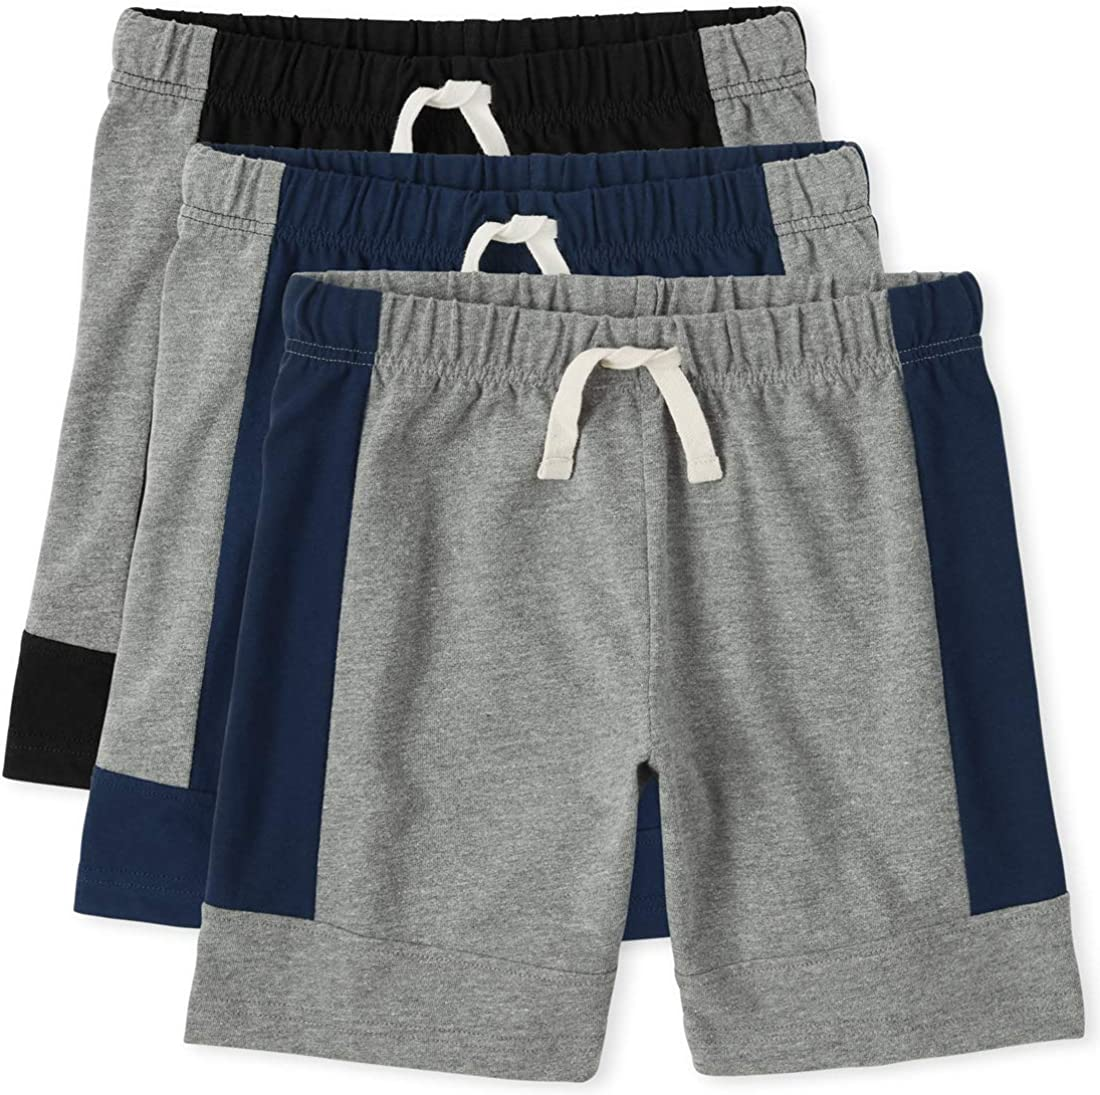 The Children's Place Boys Basketball Shorts 3-Pack